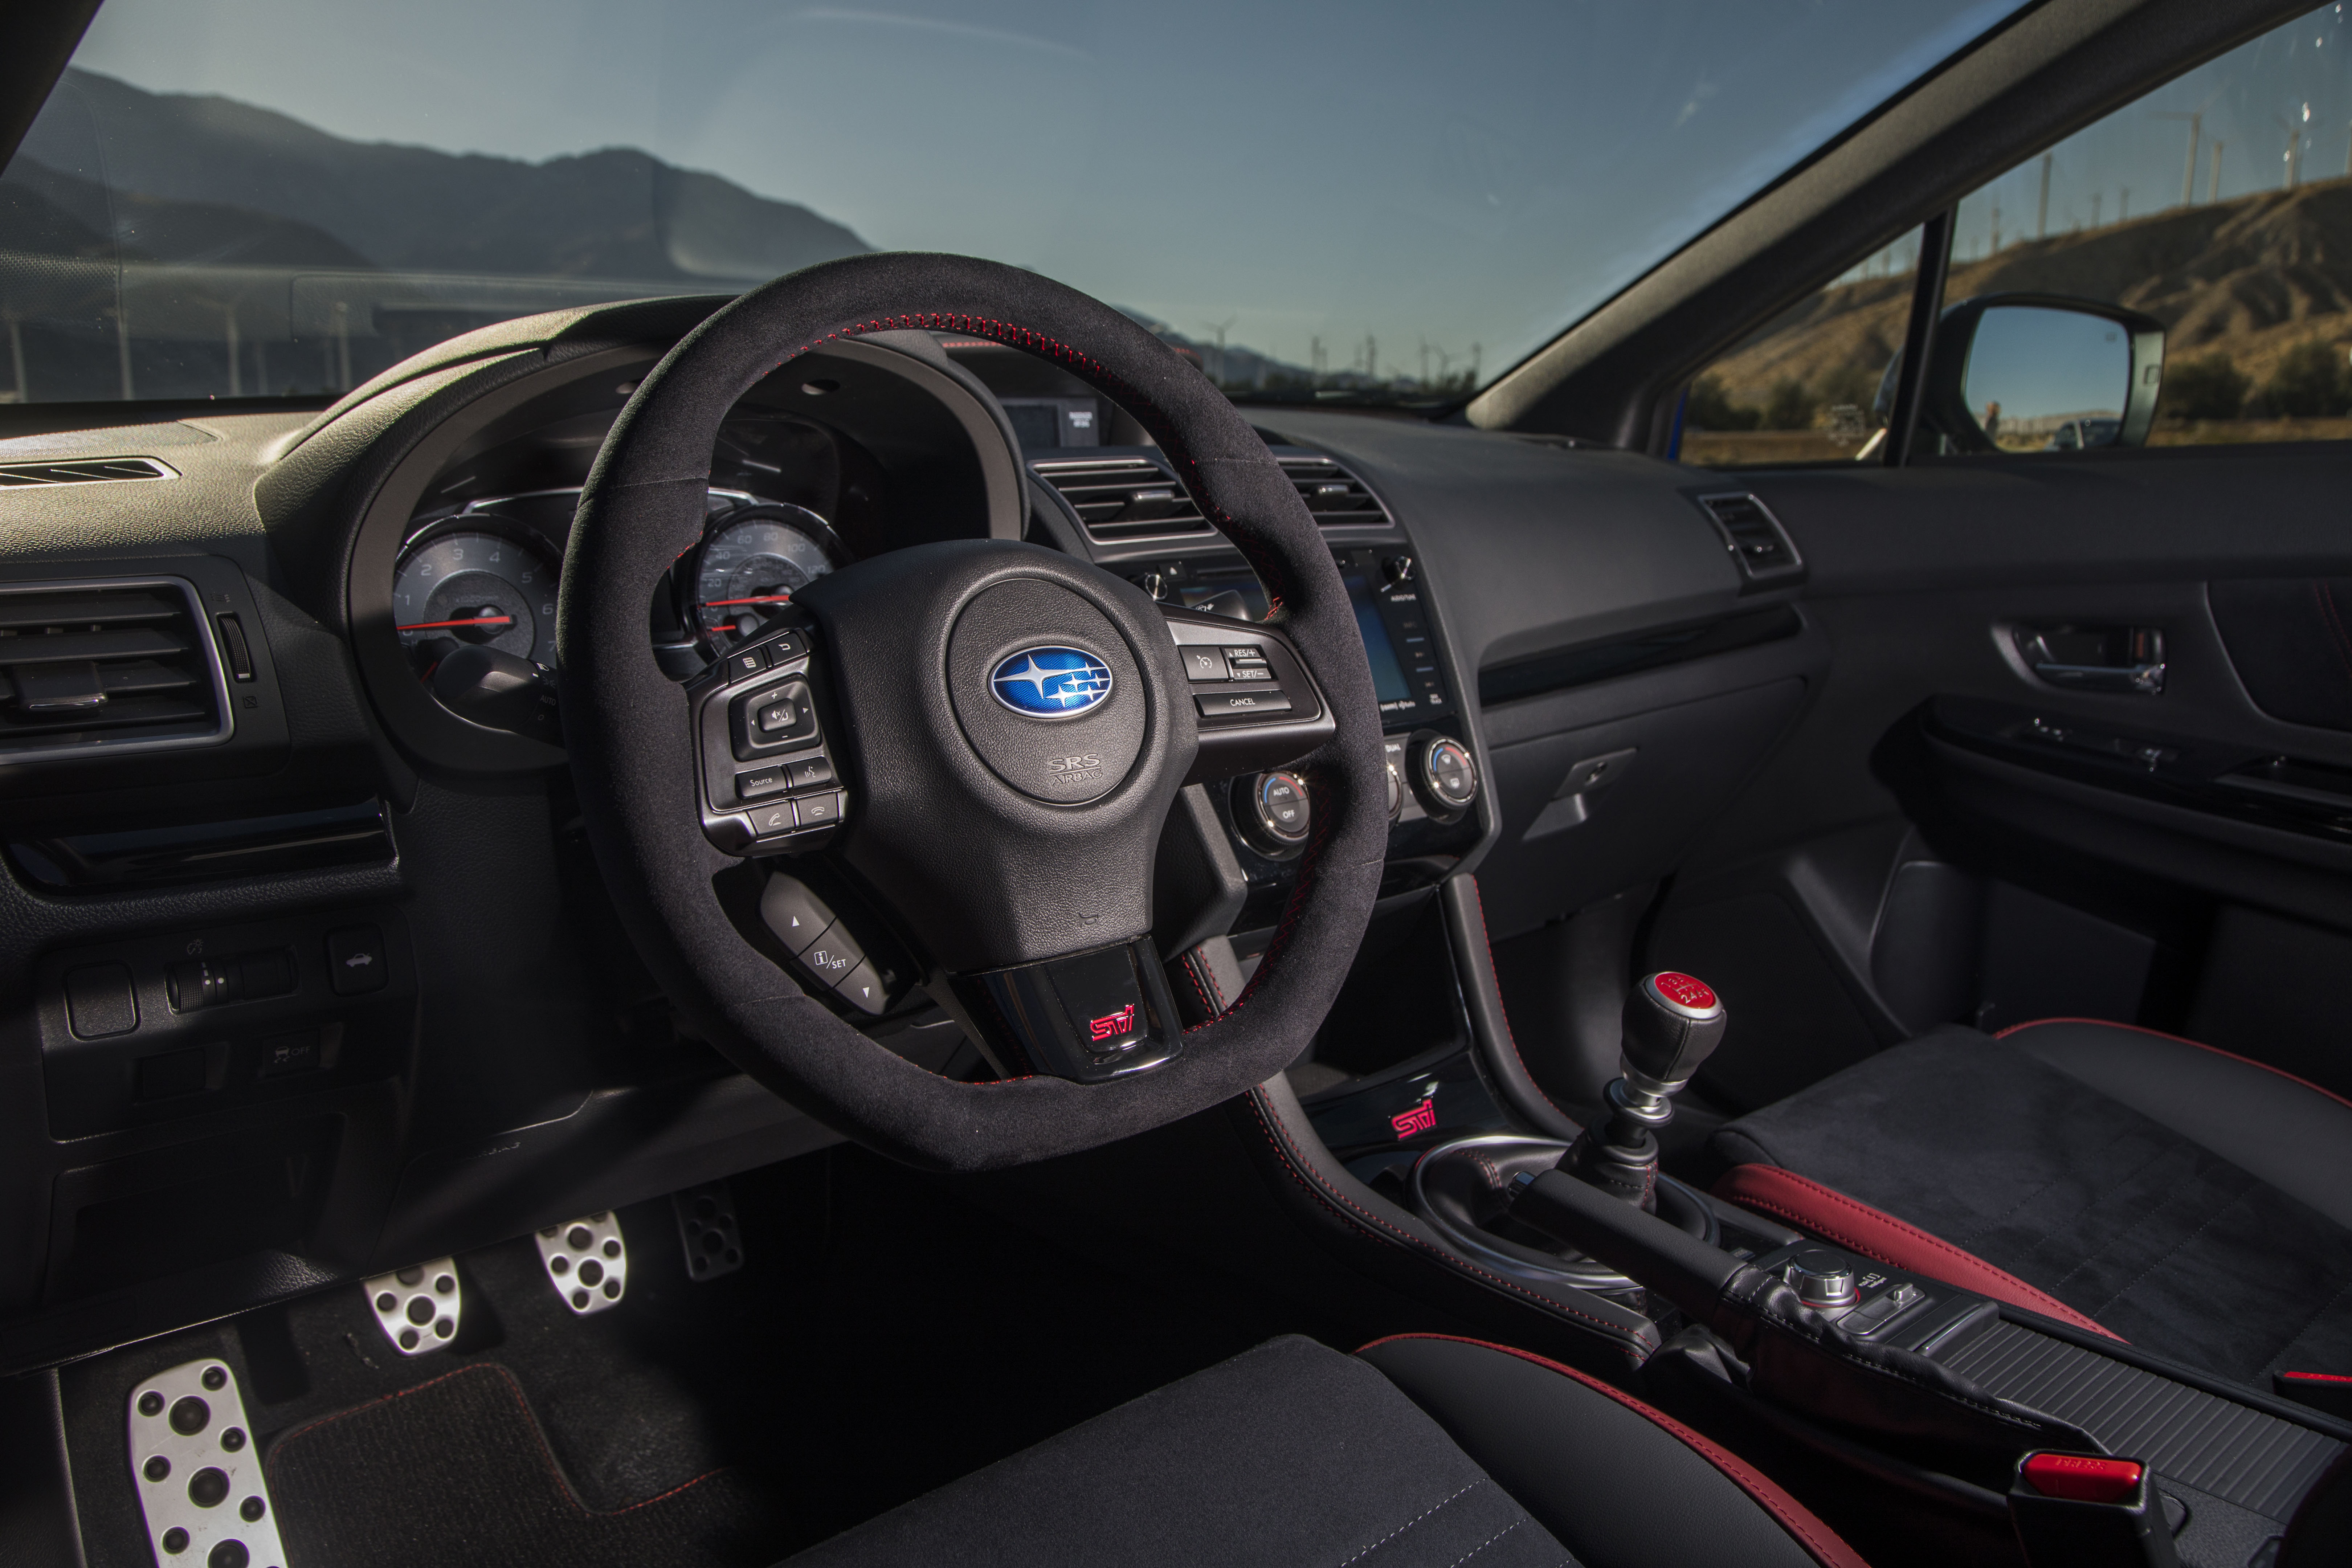 2018 Subaru Wrx Sti Ra Review At 48 995 Is The Most Expensive